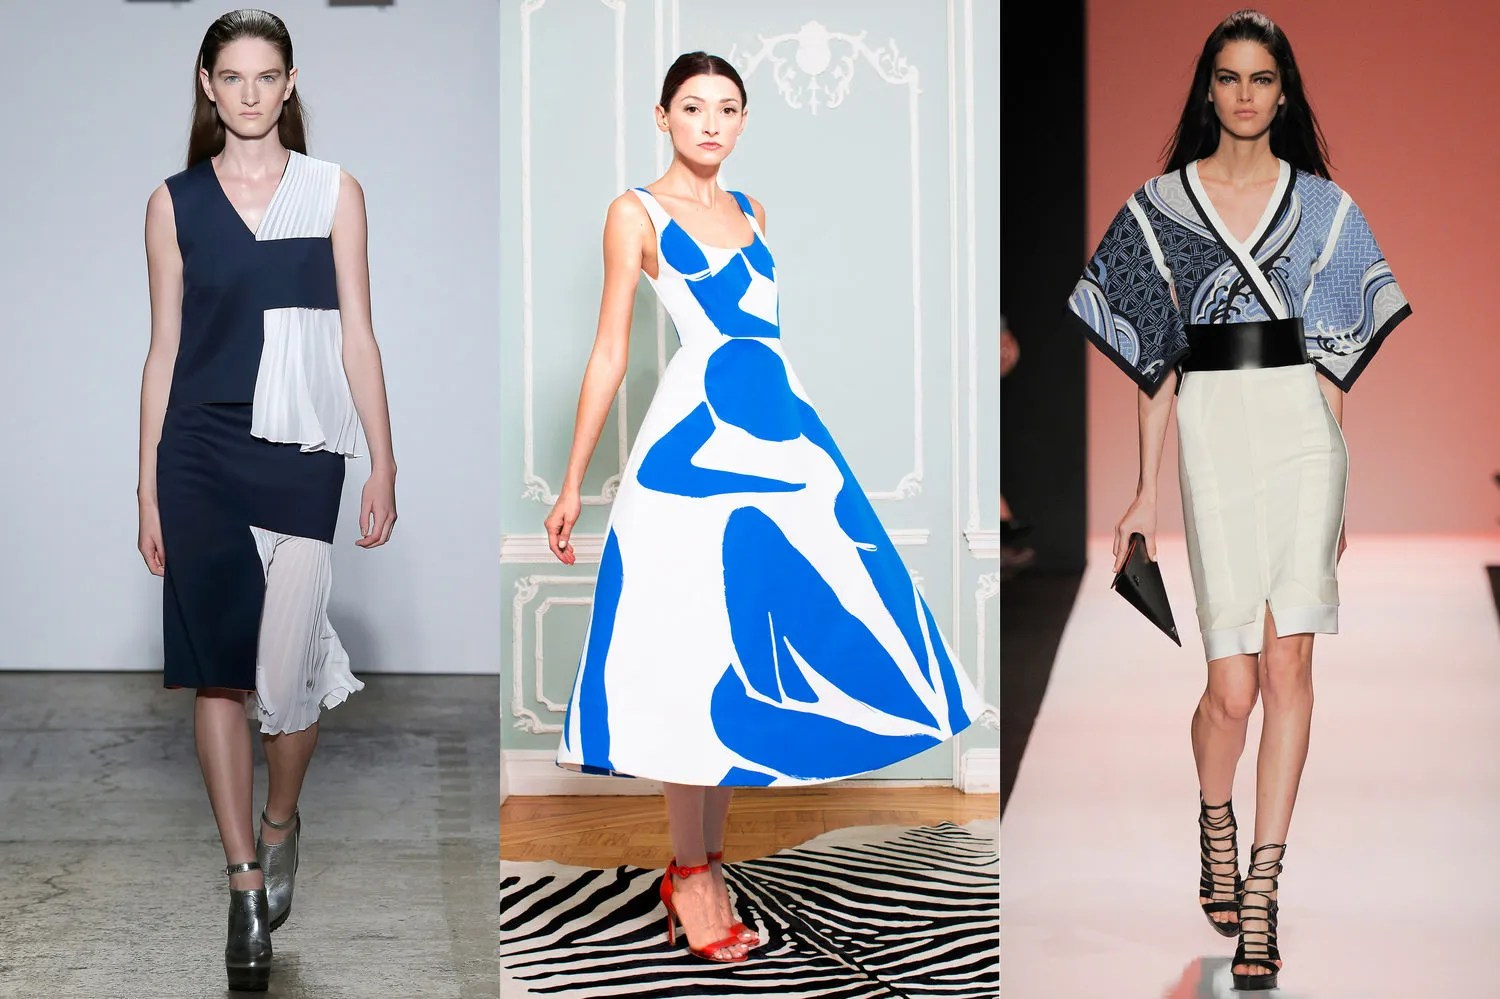 Trend Wandfarben 2015 Spring 2015 Fashion Trends From Fashion Week | Glamour